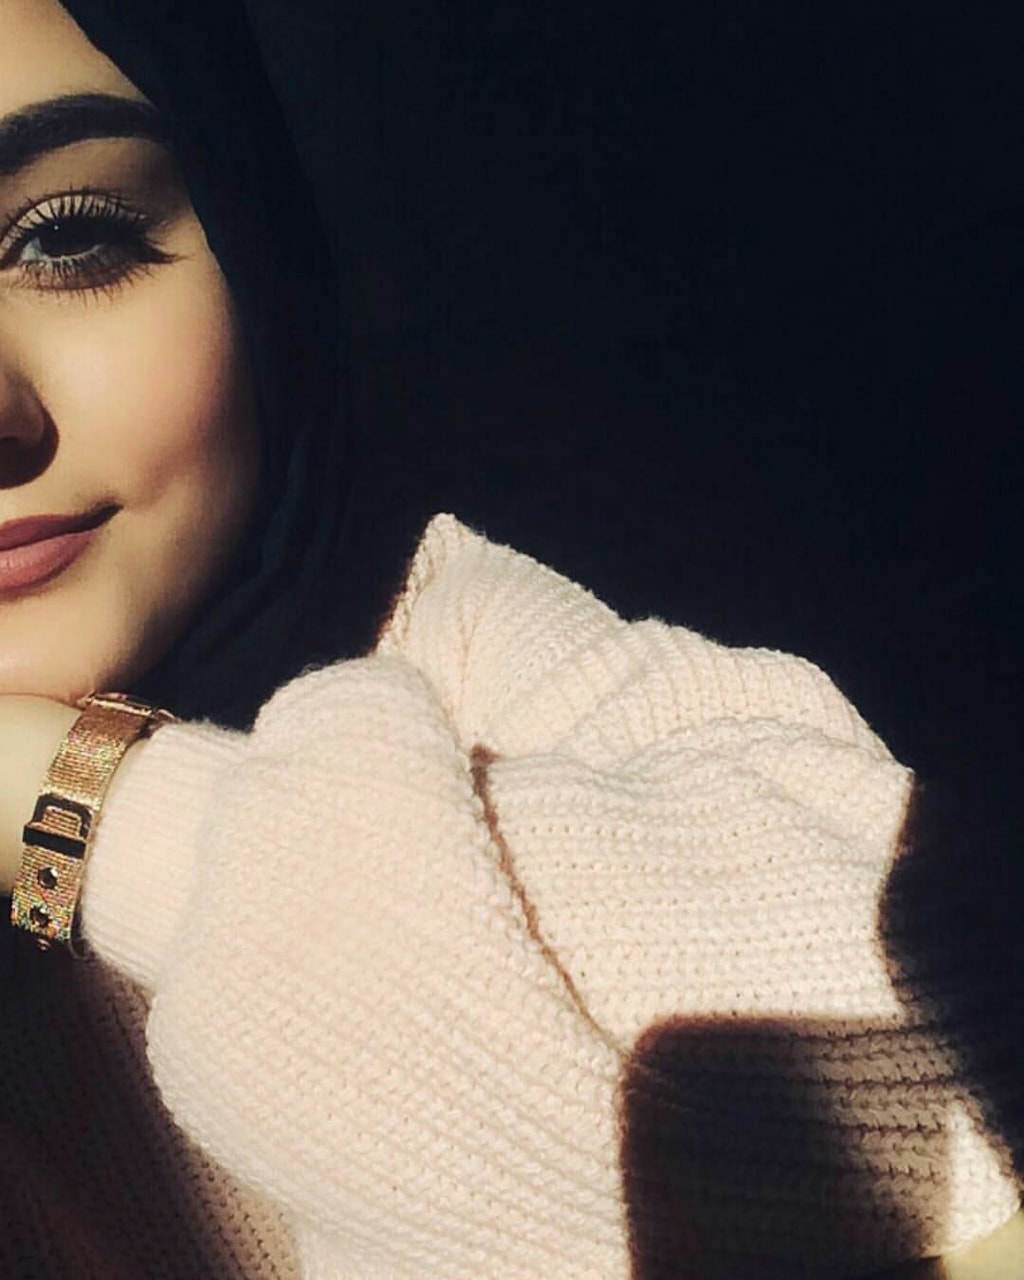 891 Images About بنات محجبات On We Heart It See More About Hijab